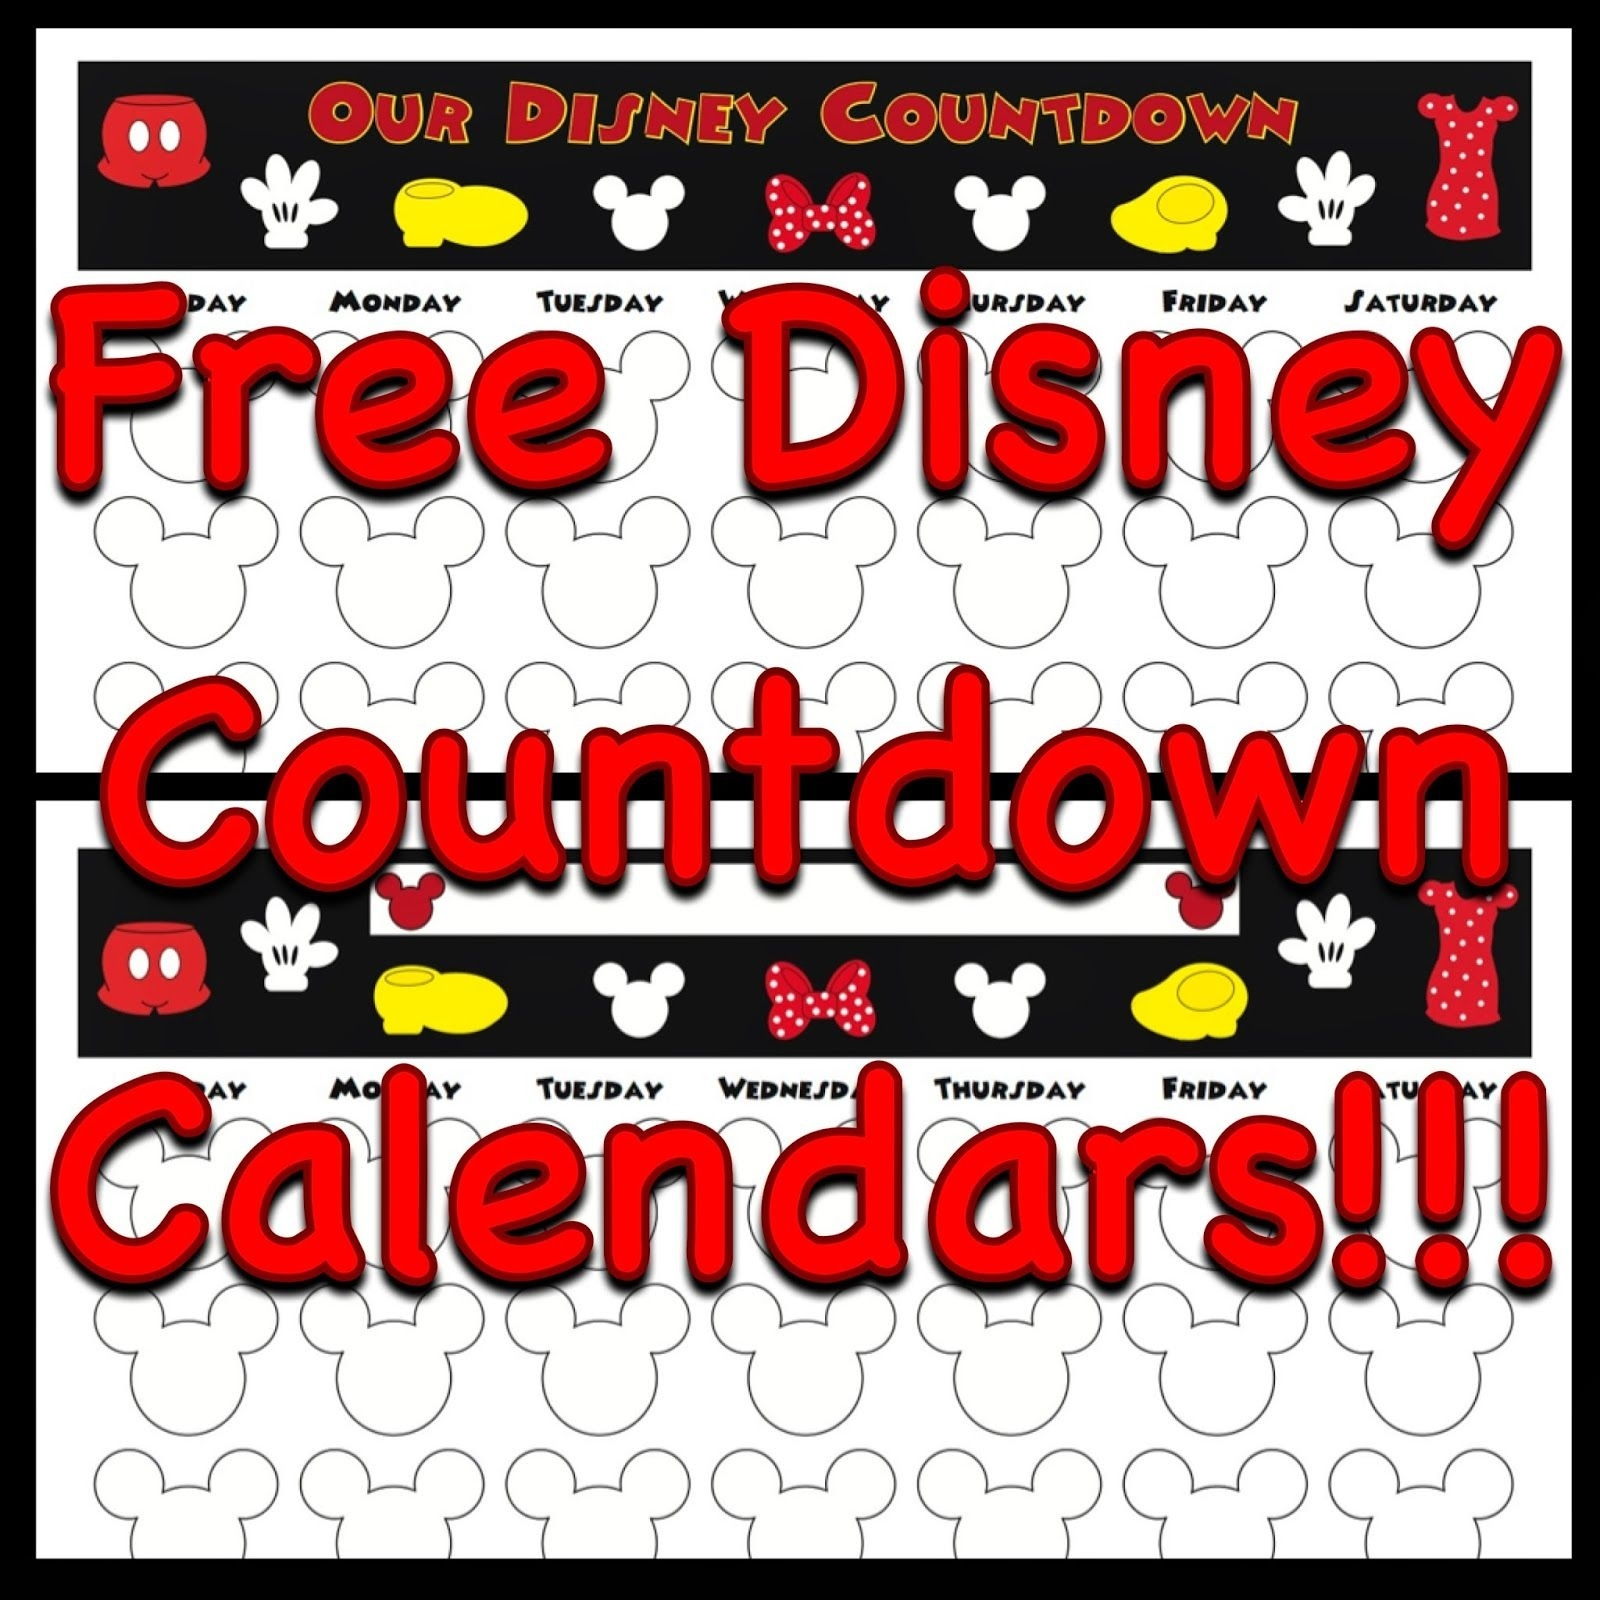 Free, Printable Countdown Calendars To Use For Your Next Extraordinary Printable Countdown To Disney Calendar